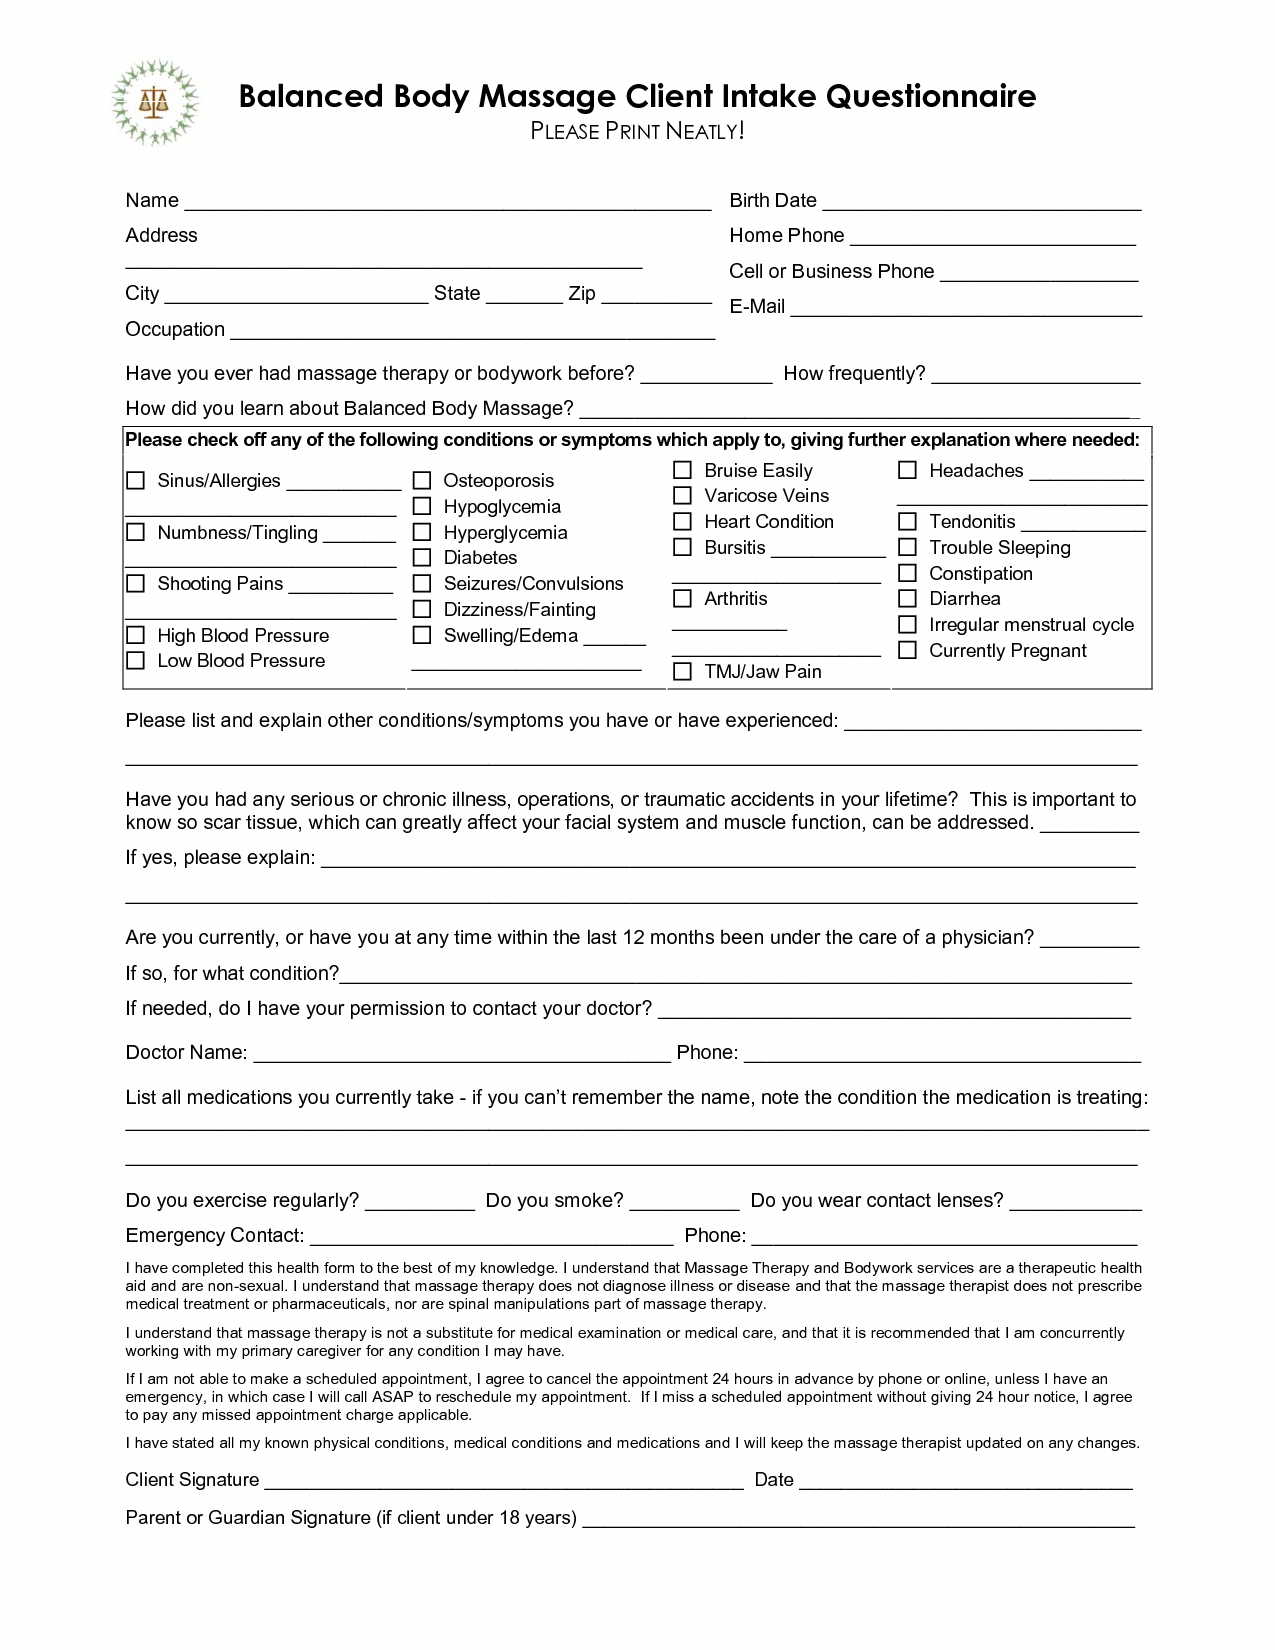 Free Massage Intake Forms | Balanced Body Massage Client Intake